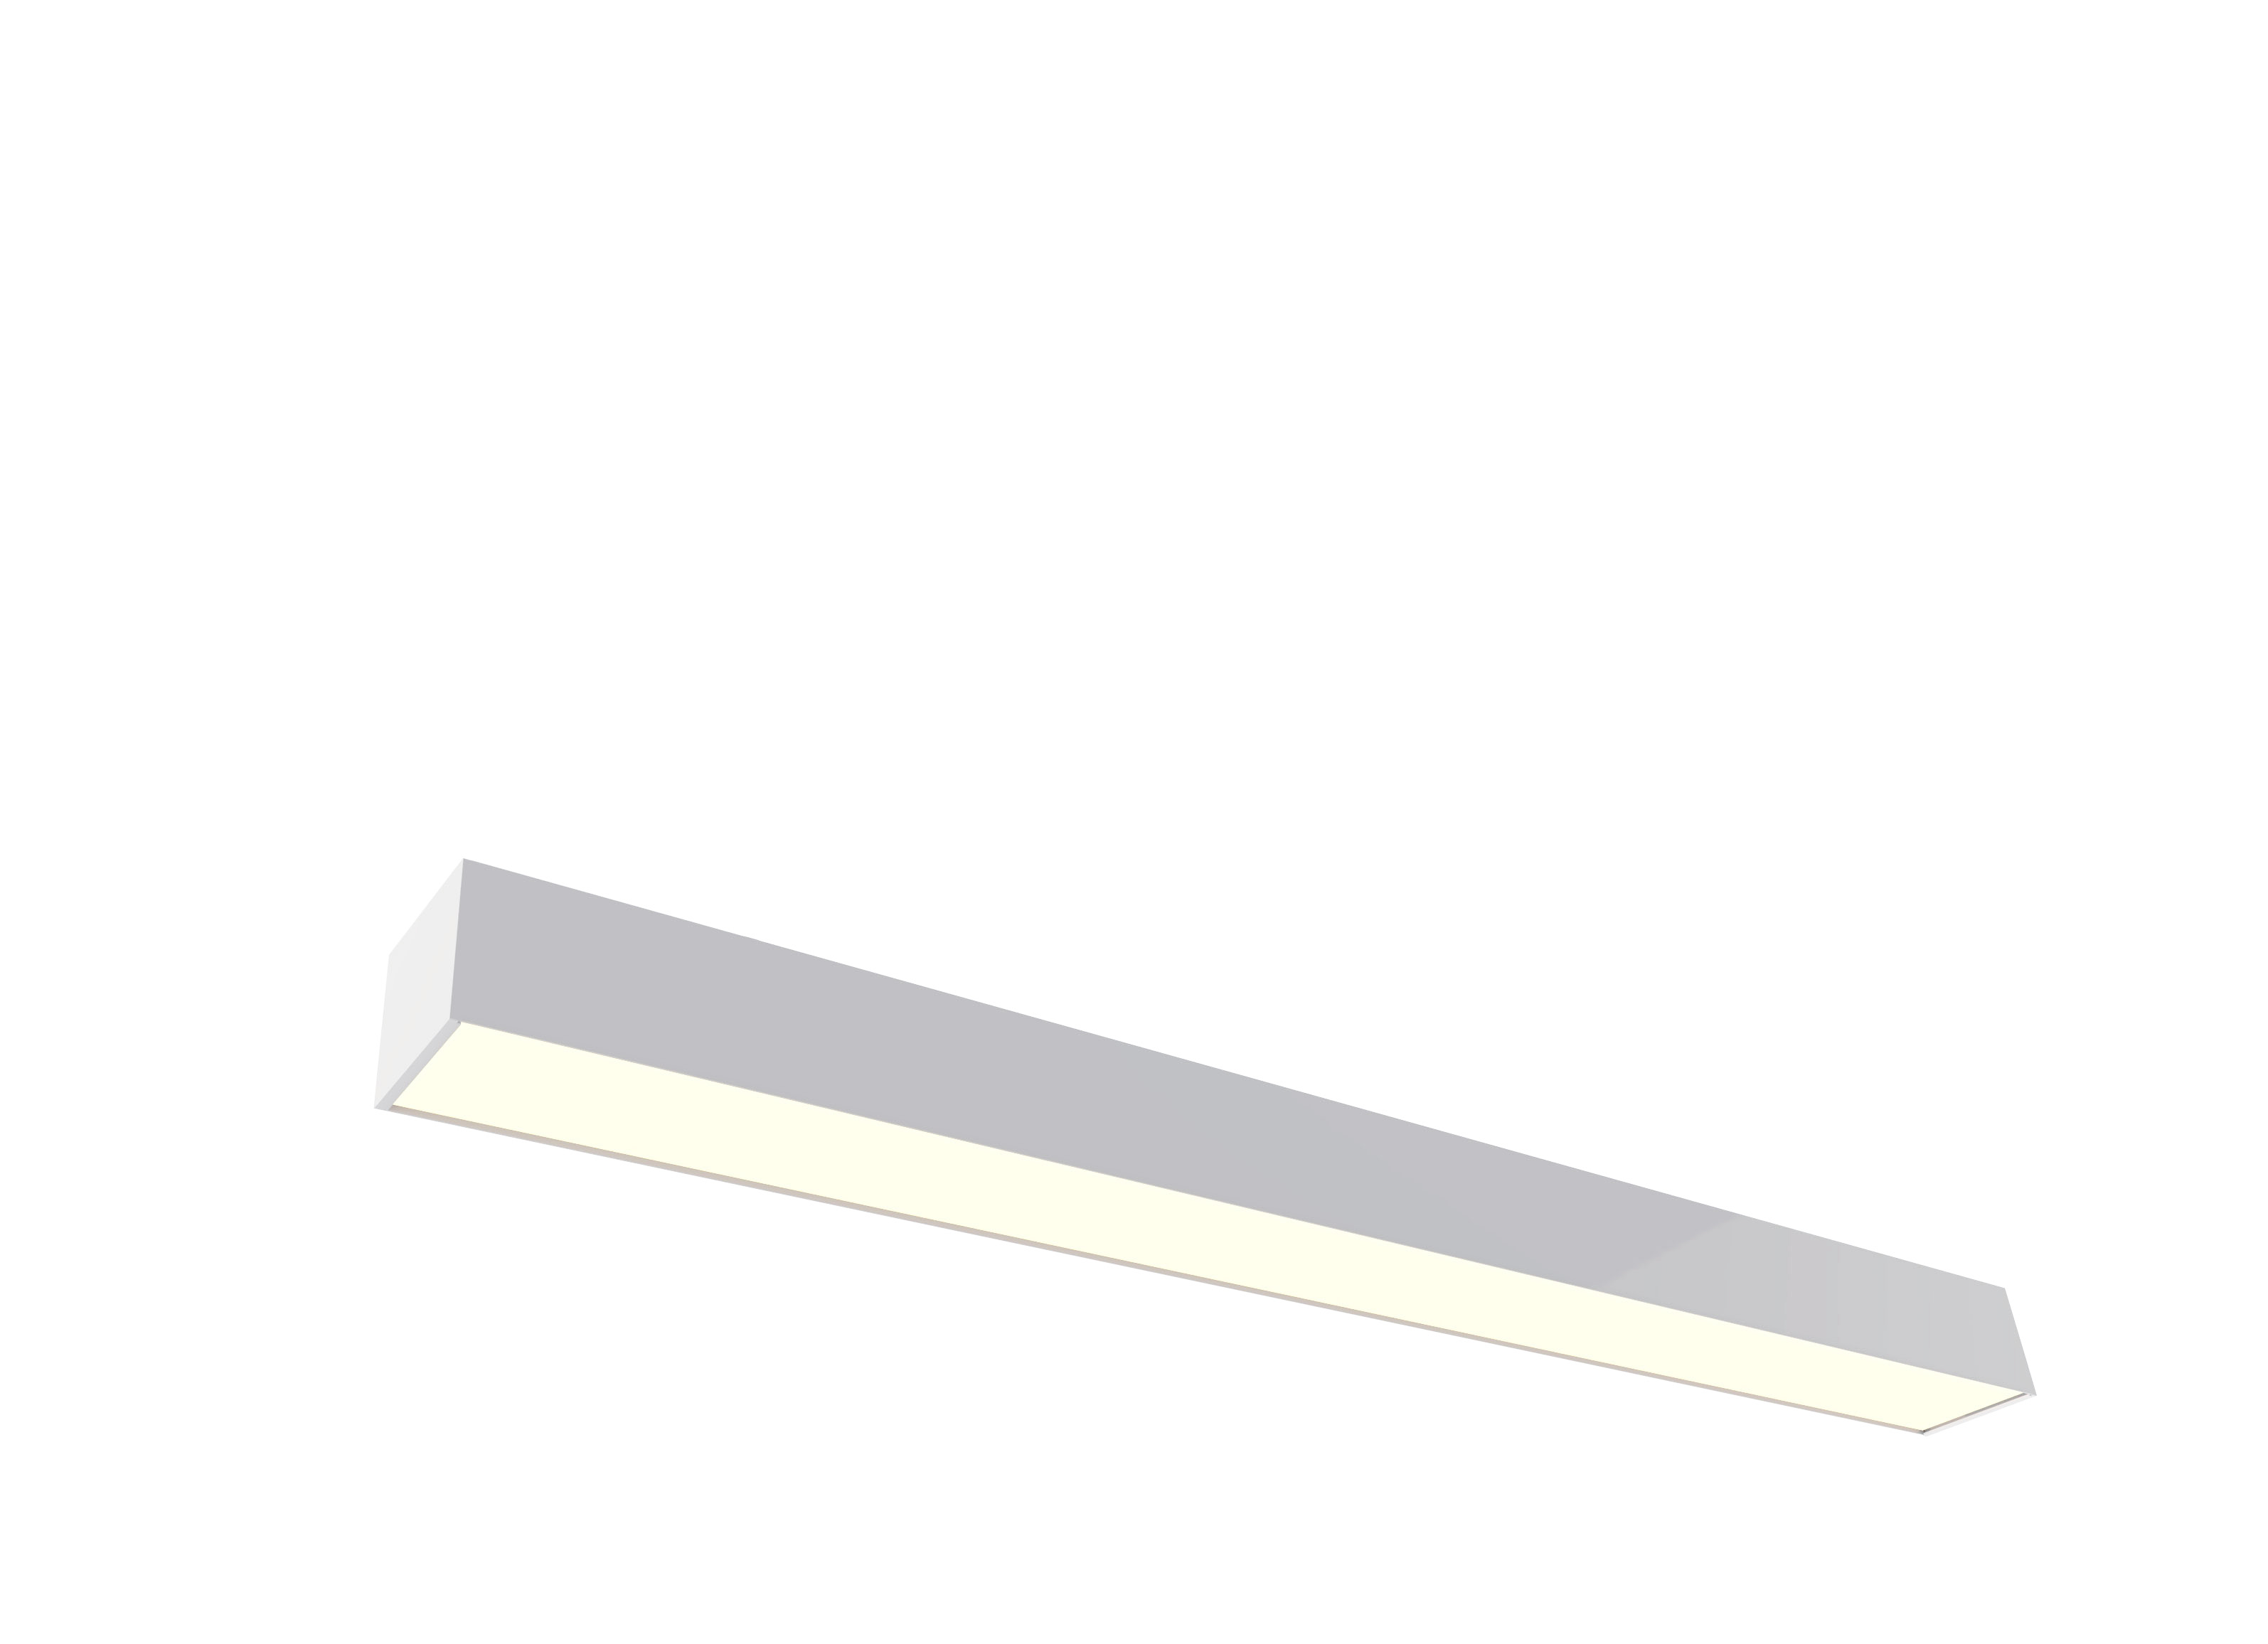 SU Ceiling Surface mounted LED light